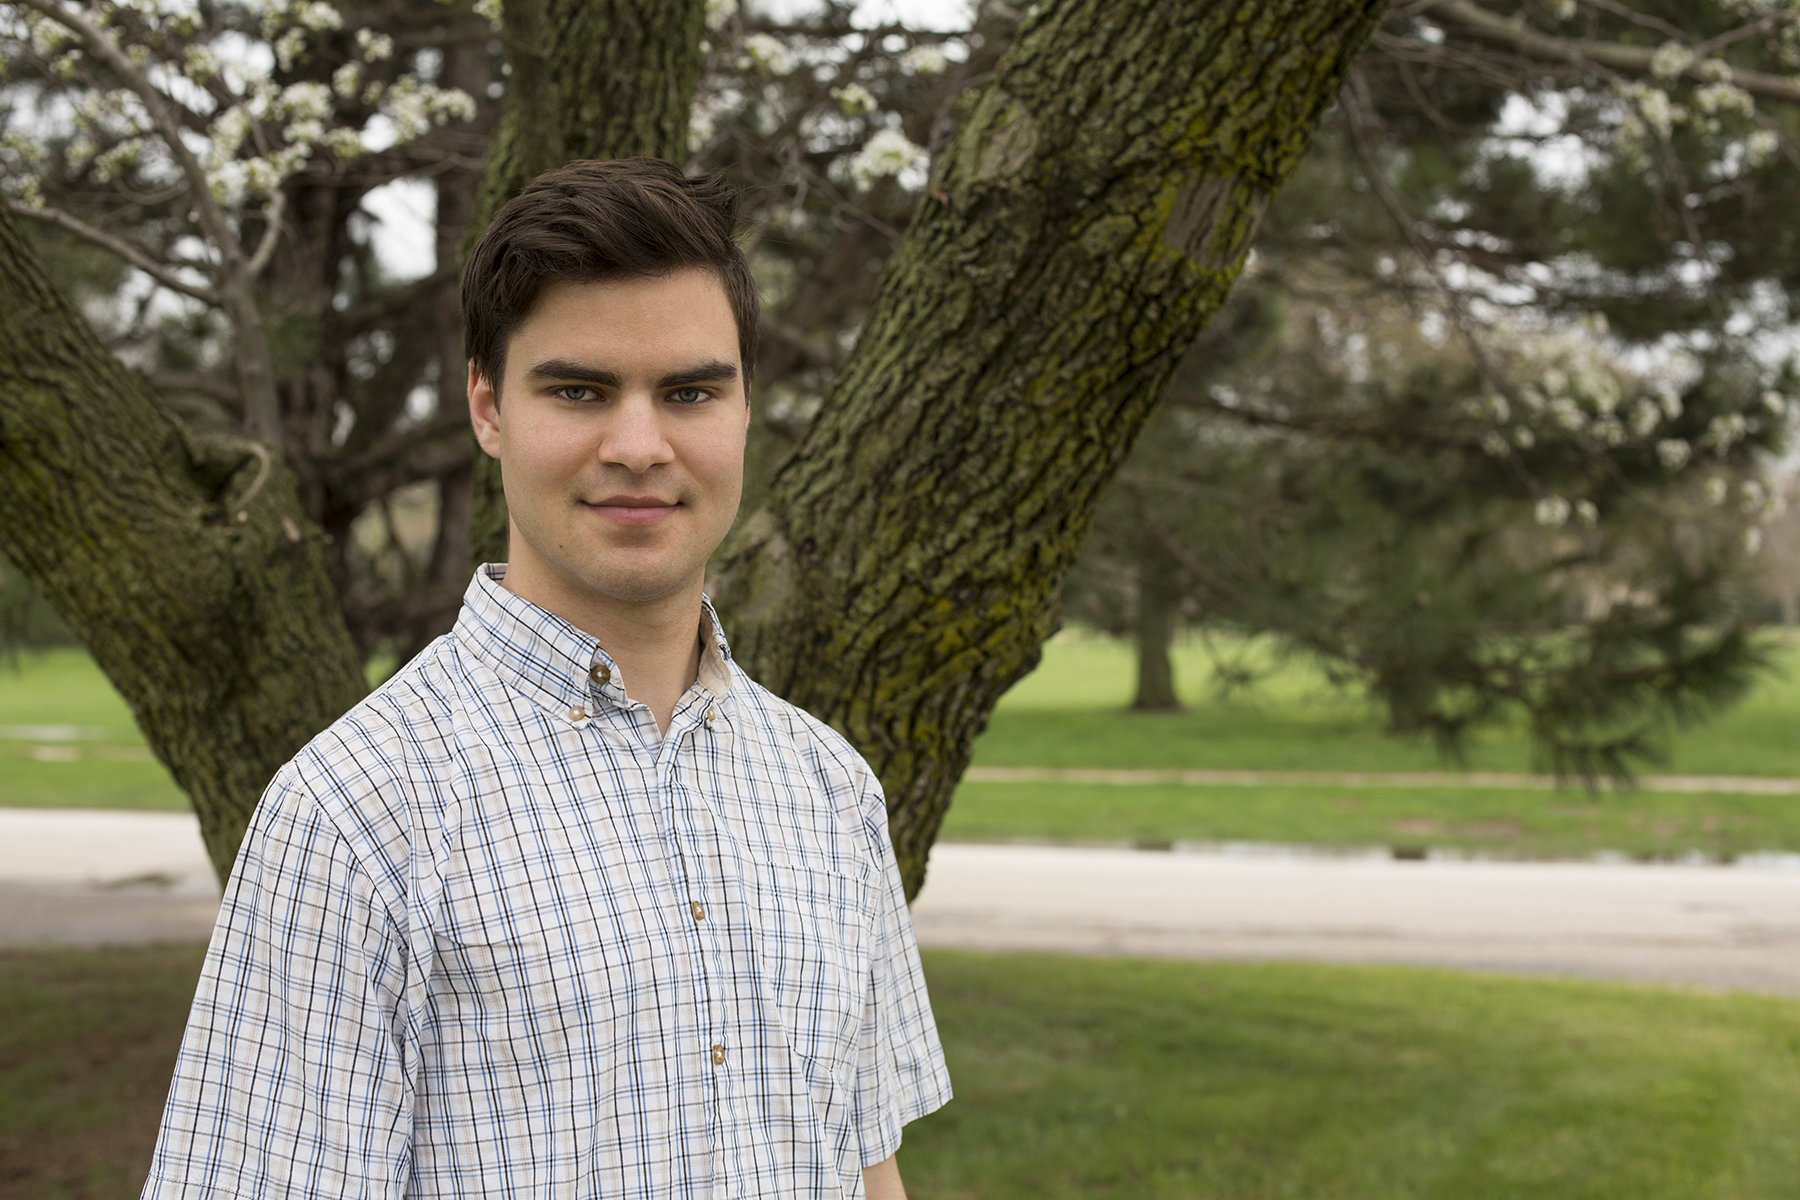 Mykhaylo M. Malakhov is an Andrews University student who awarded the Barry Goldwater Scholarship